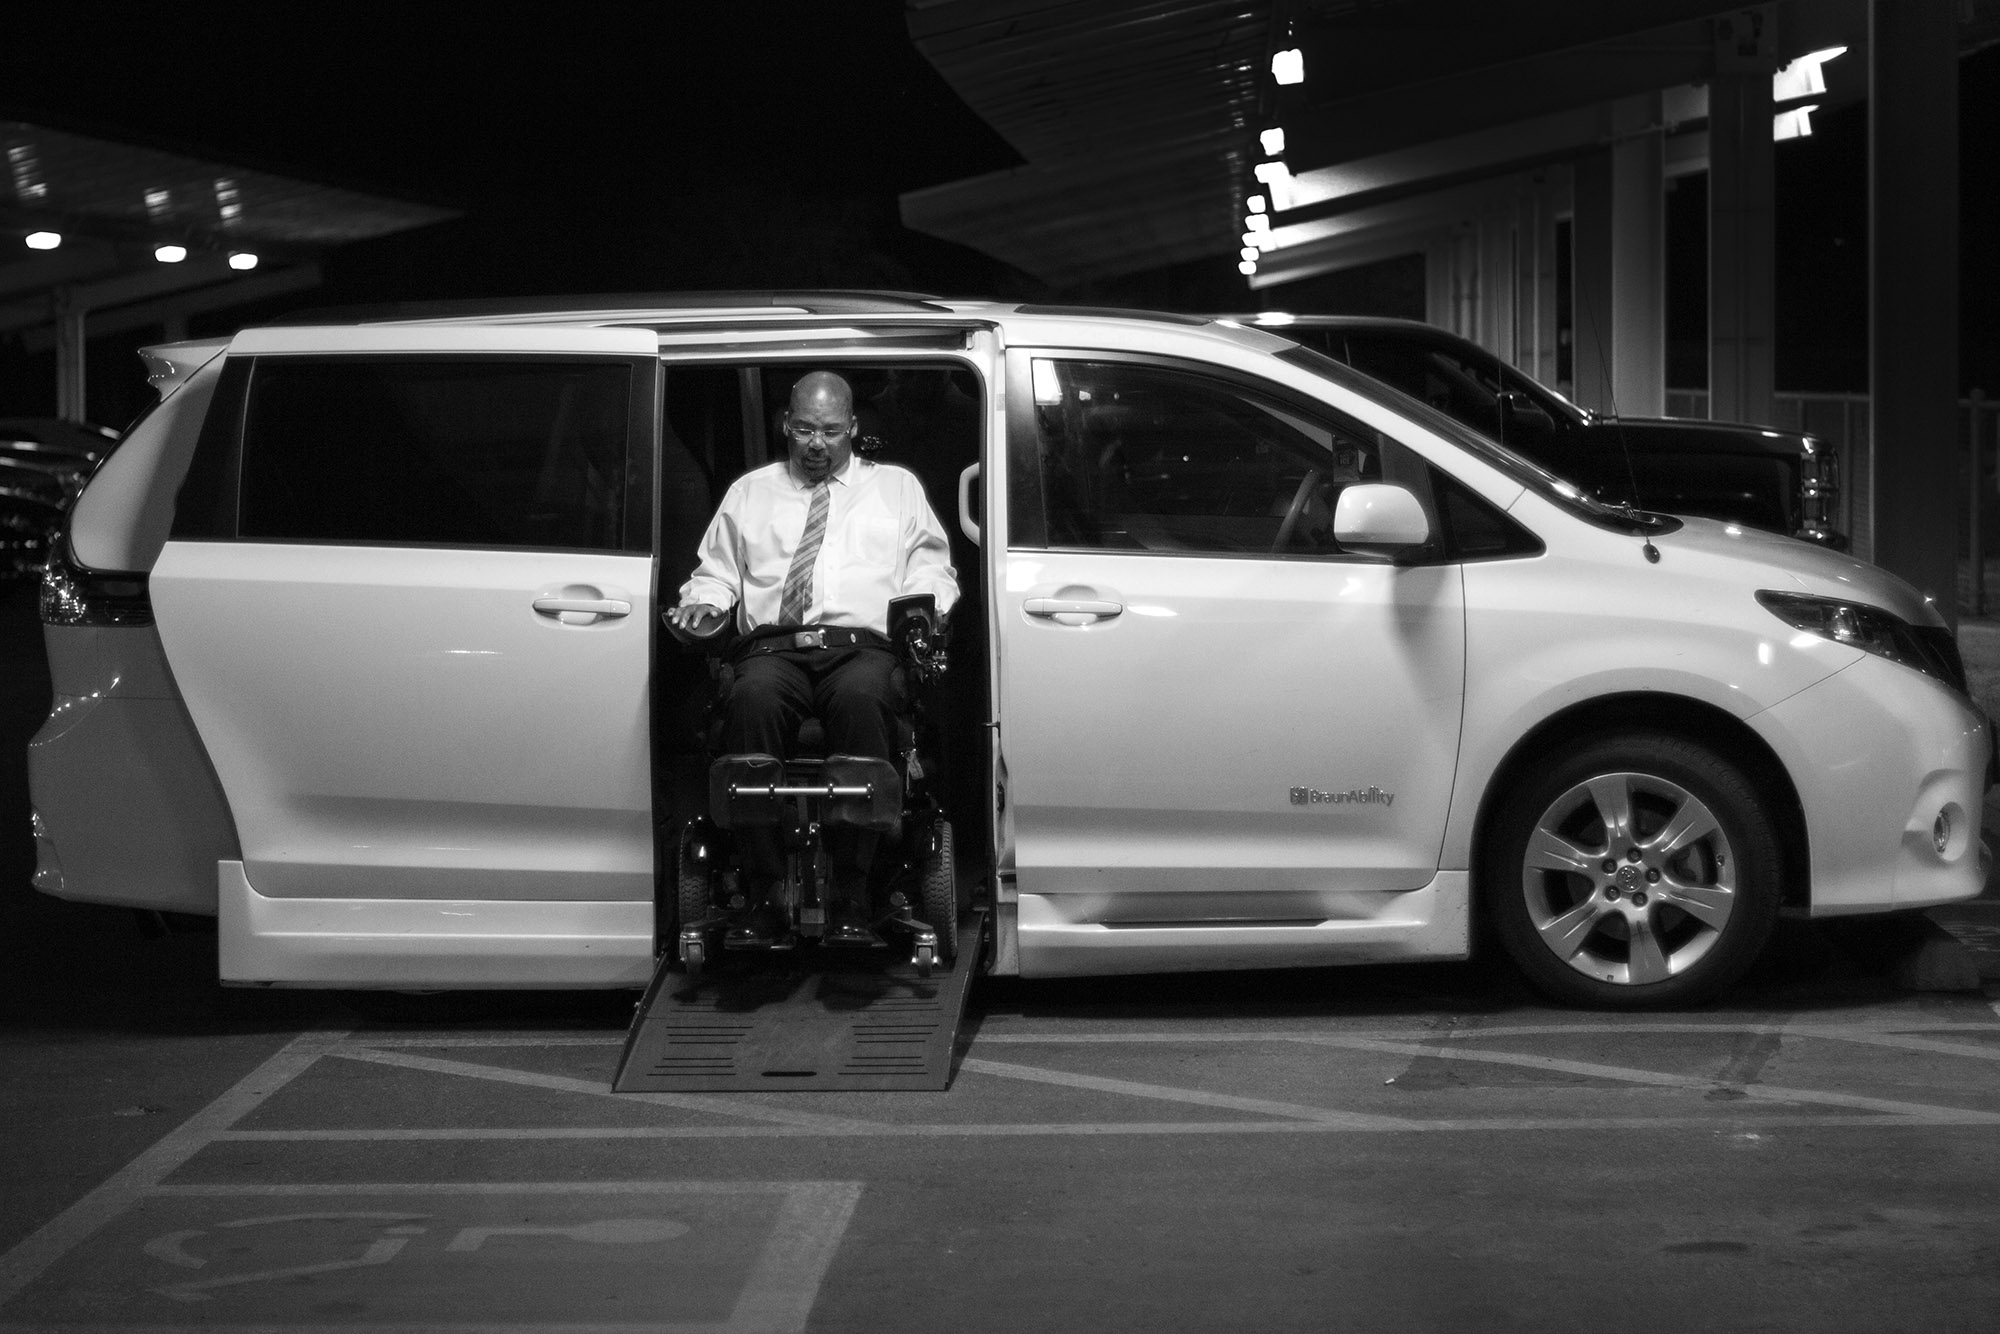 Studies have linked ALS to military service, so the U.S. Government provides equipment to veterans, such as Mike's motorized wheelchair and custom van.